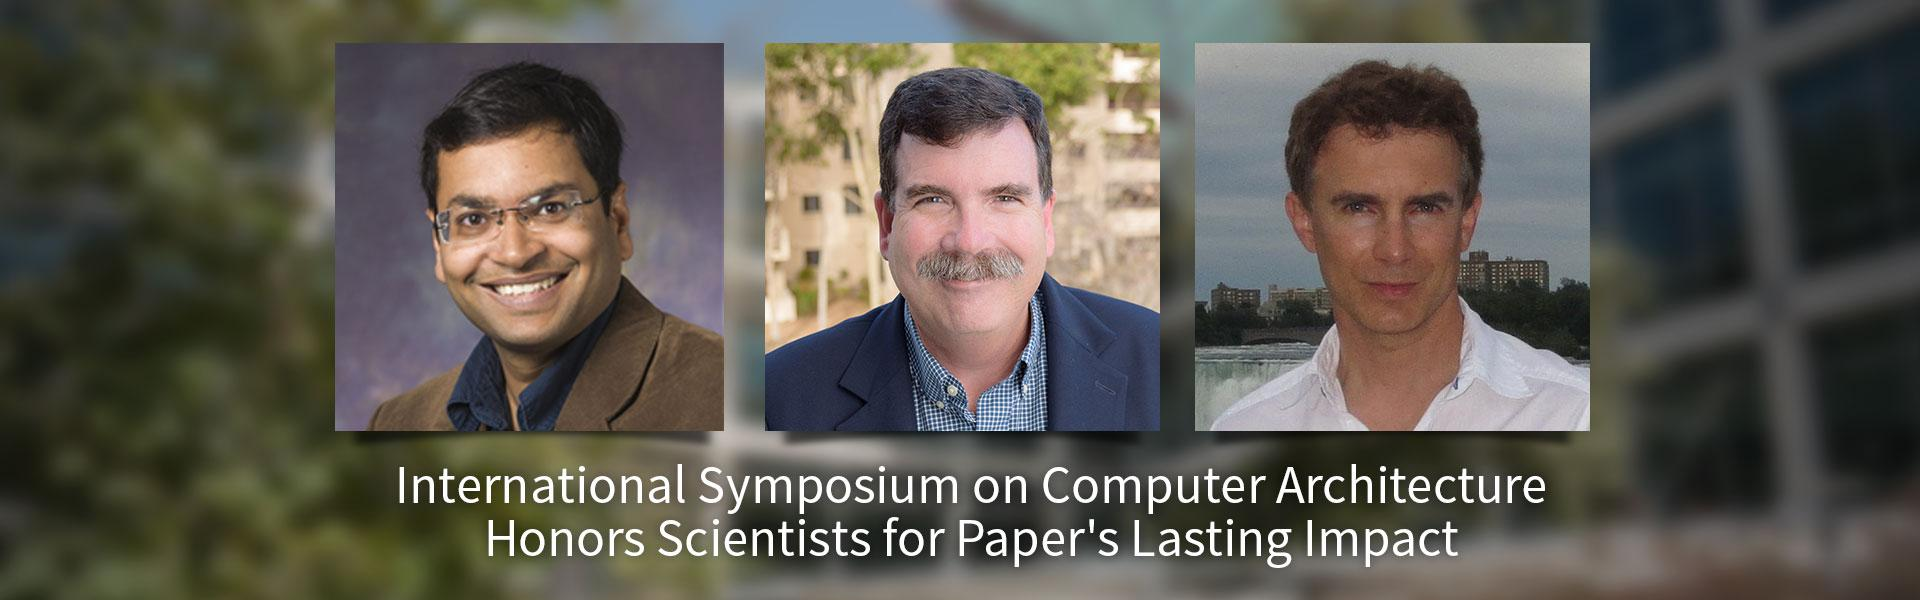 International Symposium on Computer Architecture Honors Scientists for Paper's Lasting Impact